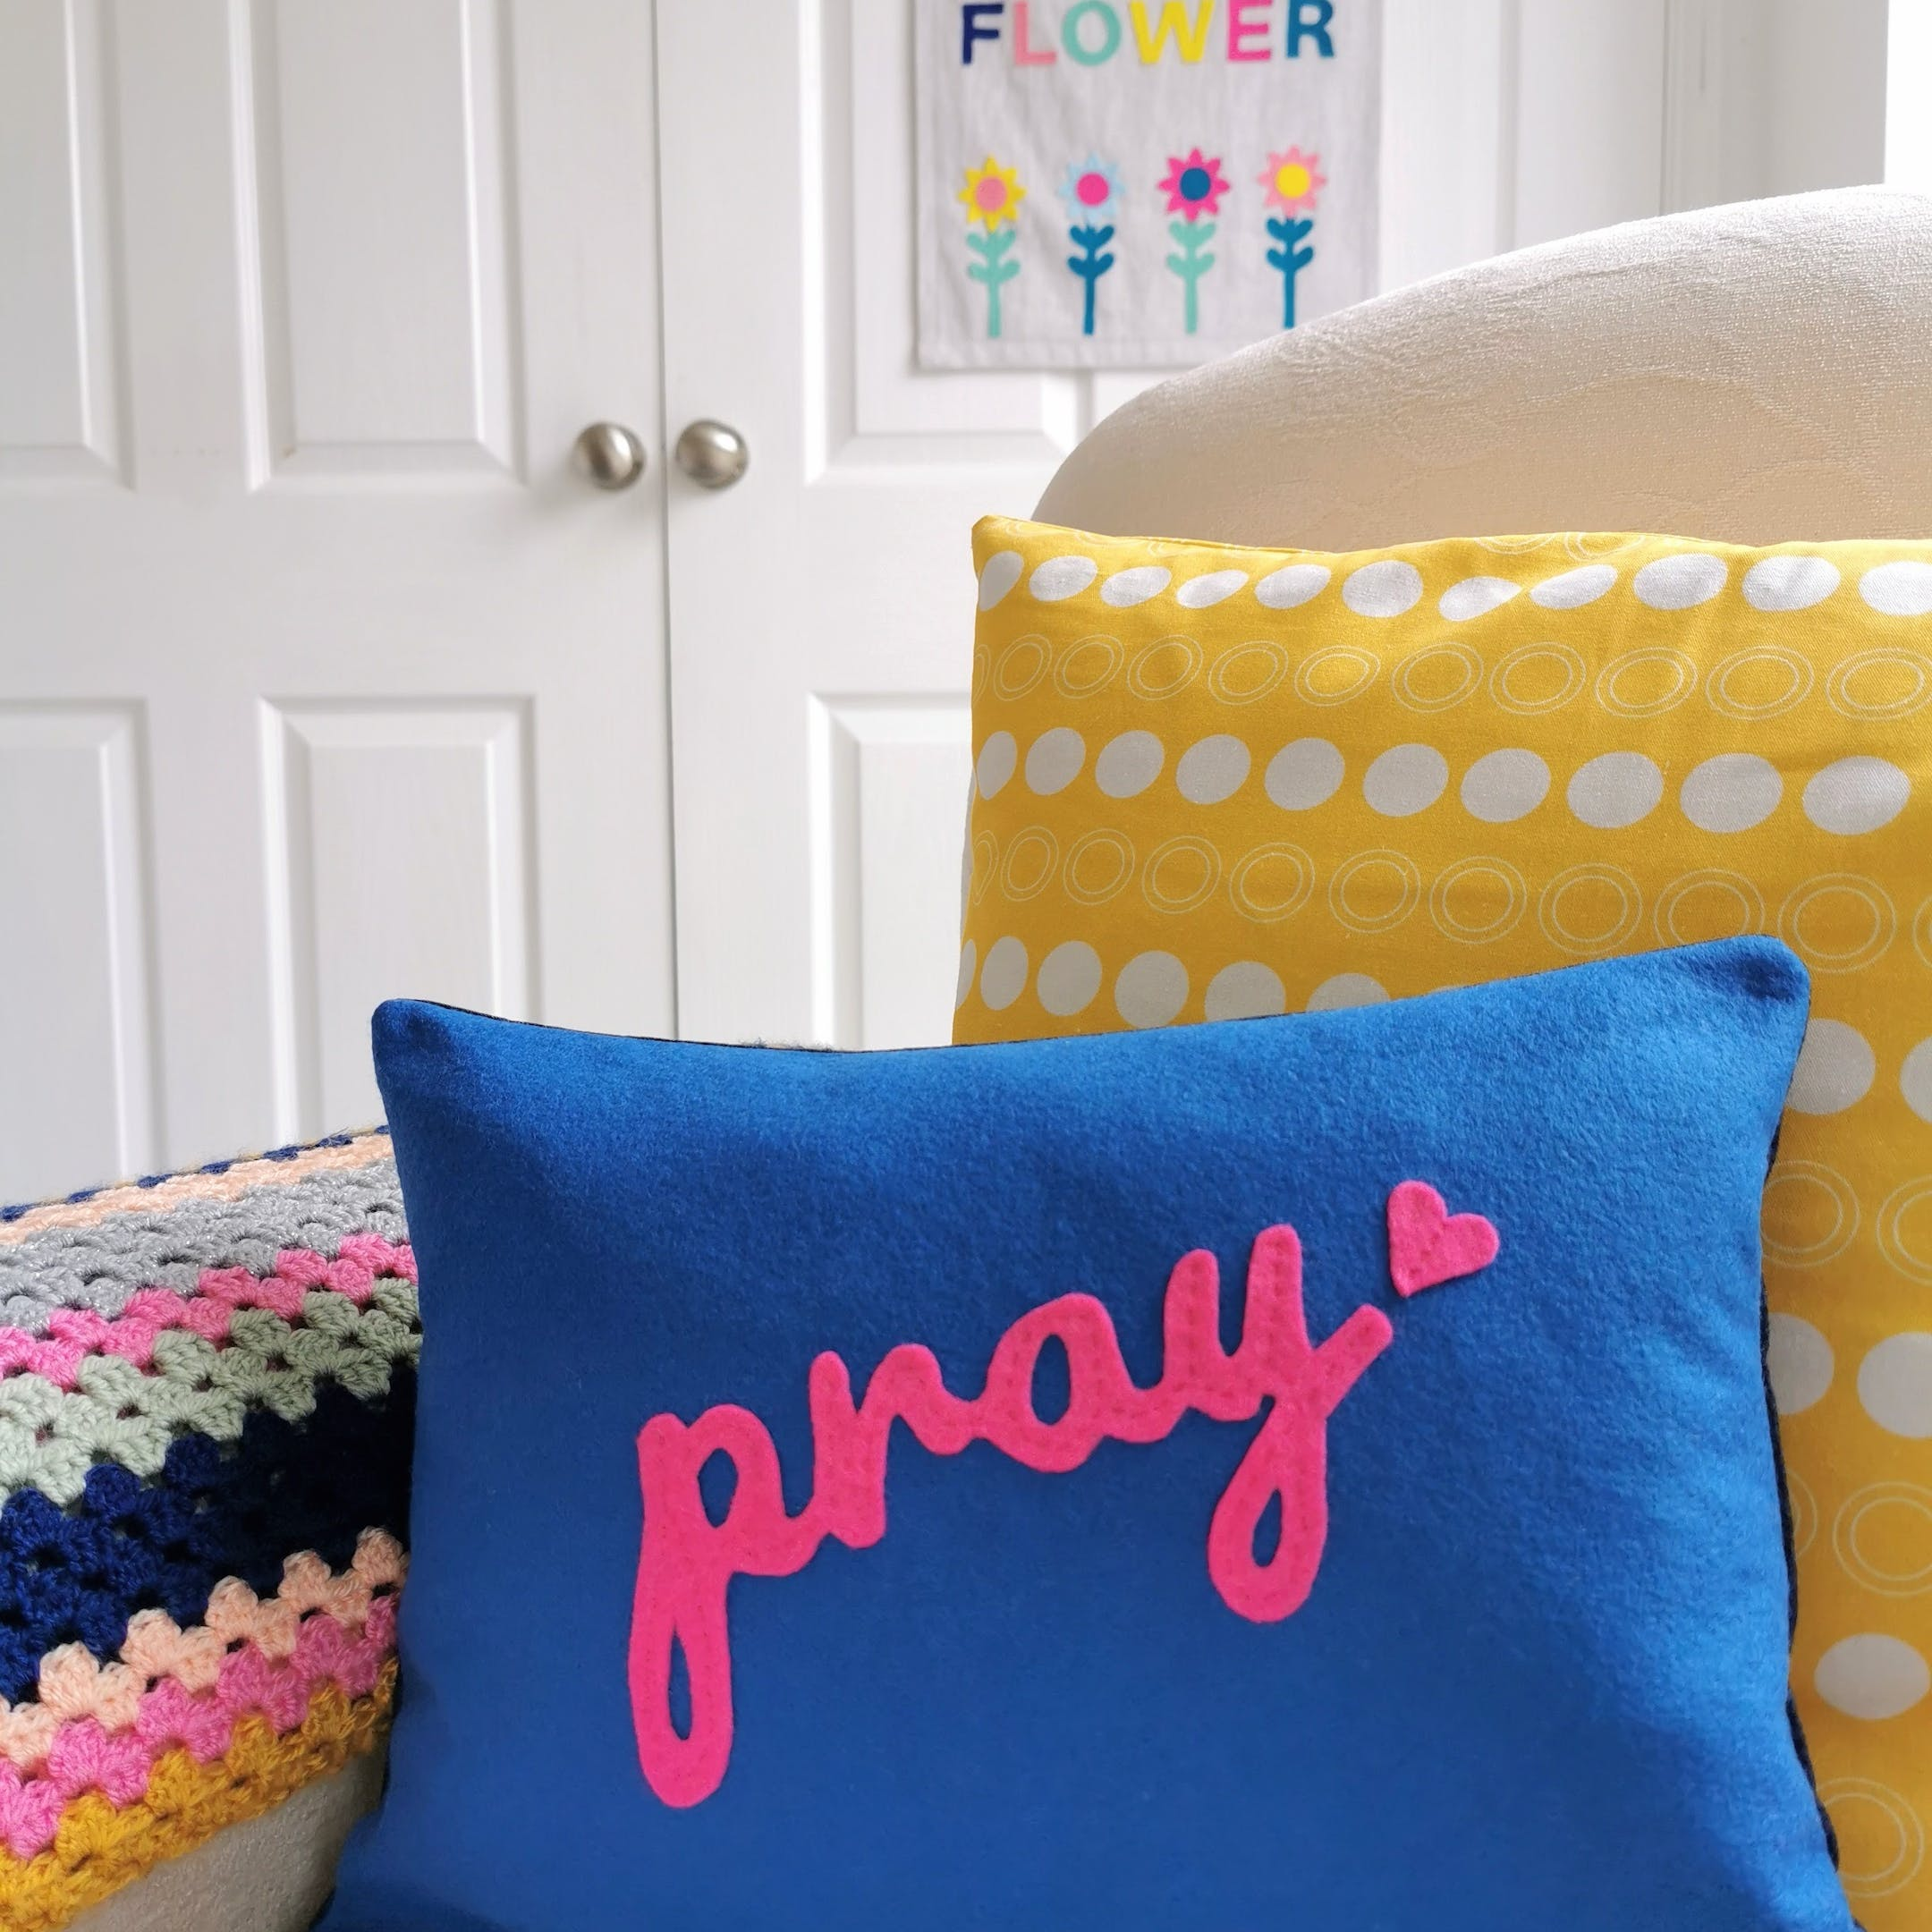 Pink Pray with Blue Cushion by Love and Joy Creative Studio | Cheerfully Given - Christian Encouragement Gifts